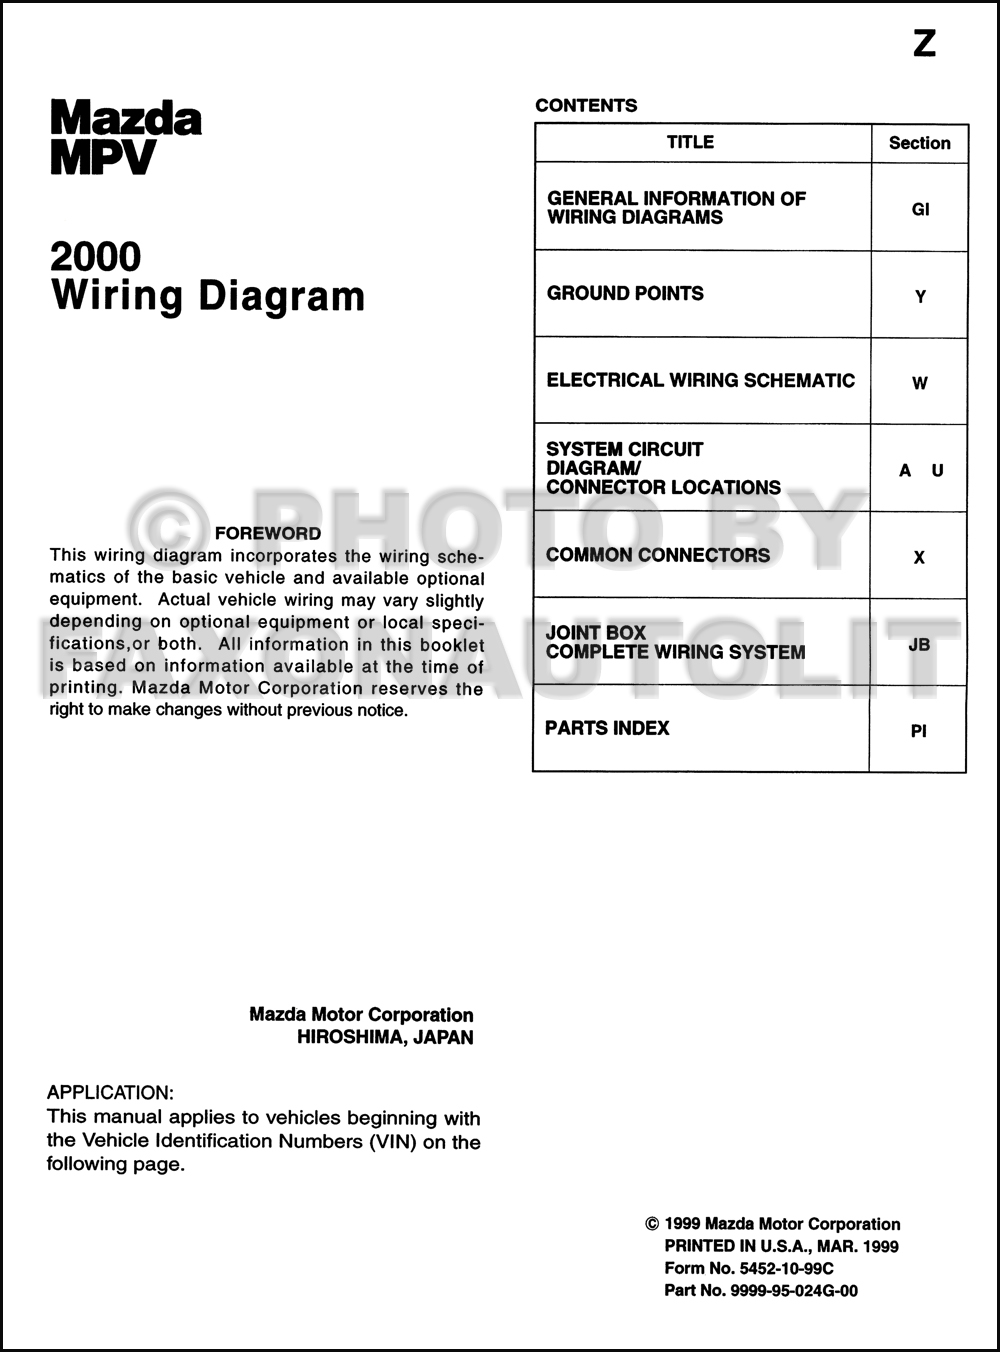 2000 mazda mpv wiring diagram manual original 2003 Mazda MPV Exhaust Diagram  2002 Mazda MPV Engine